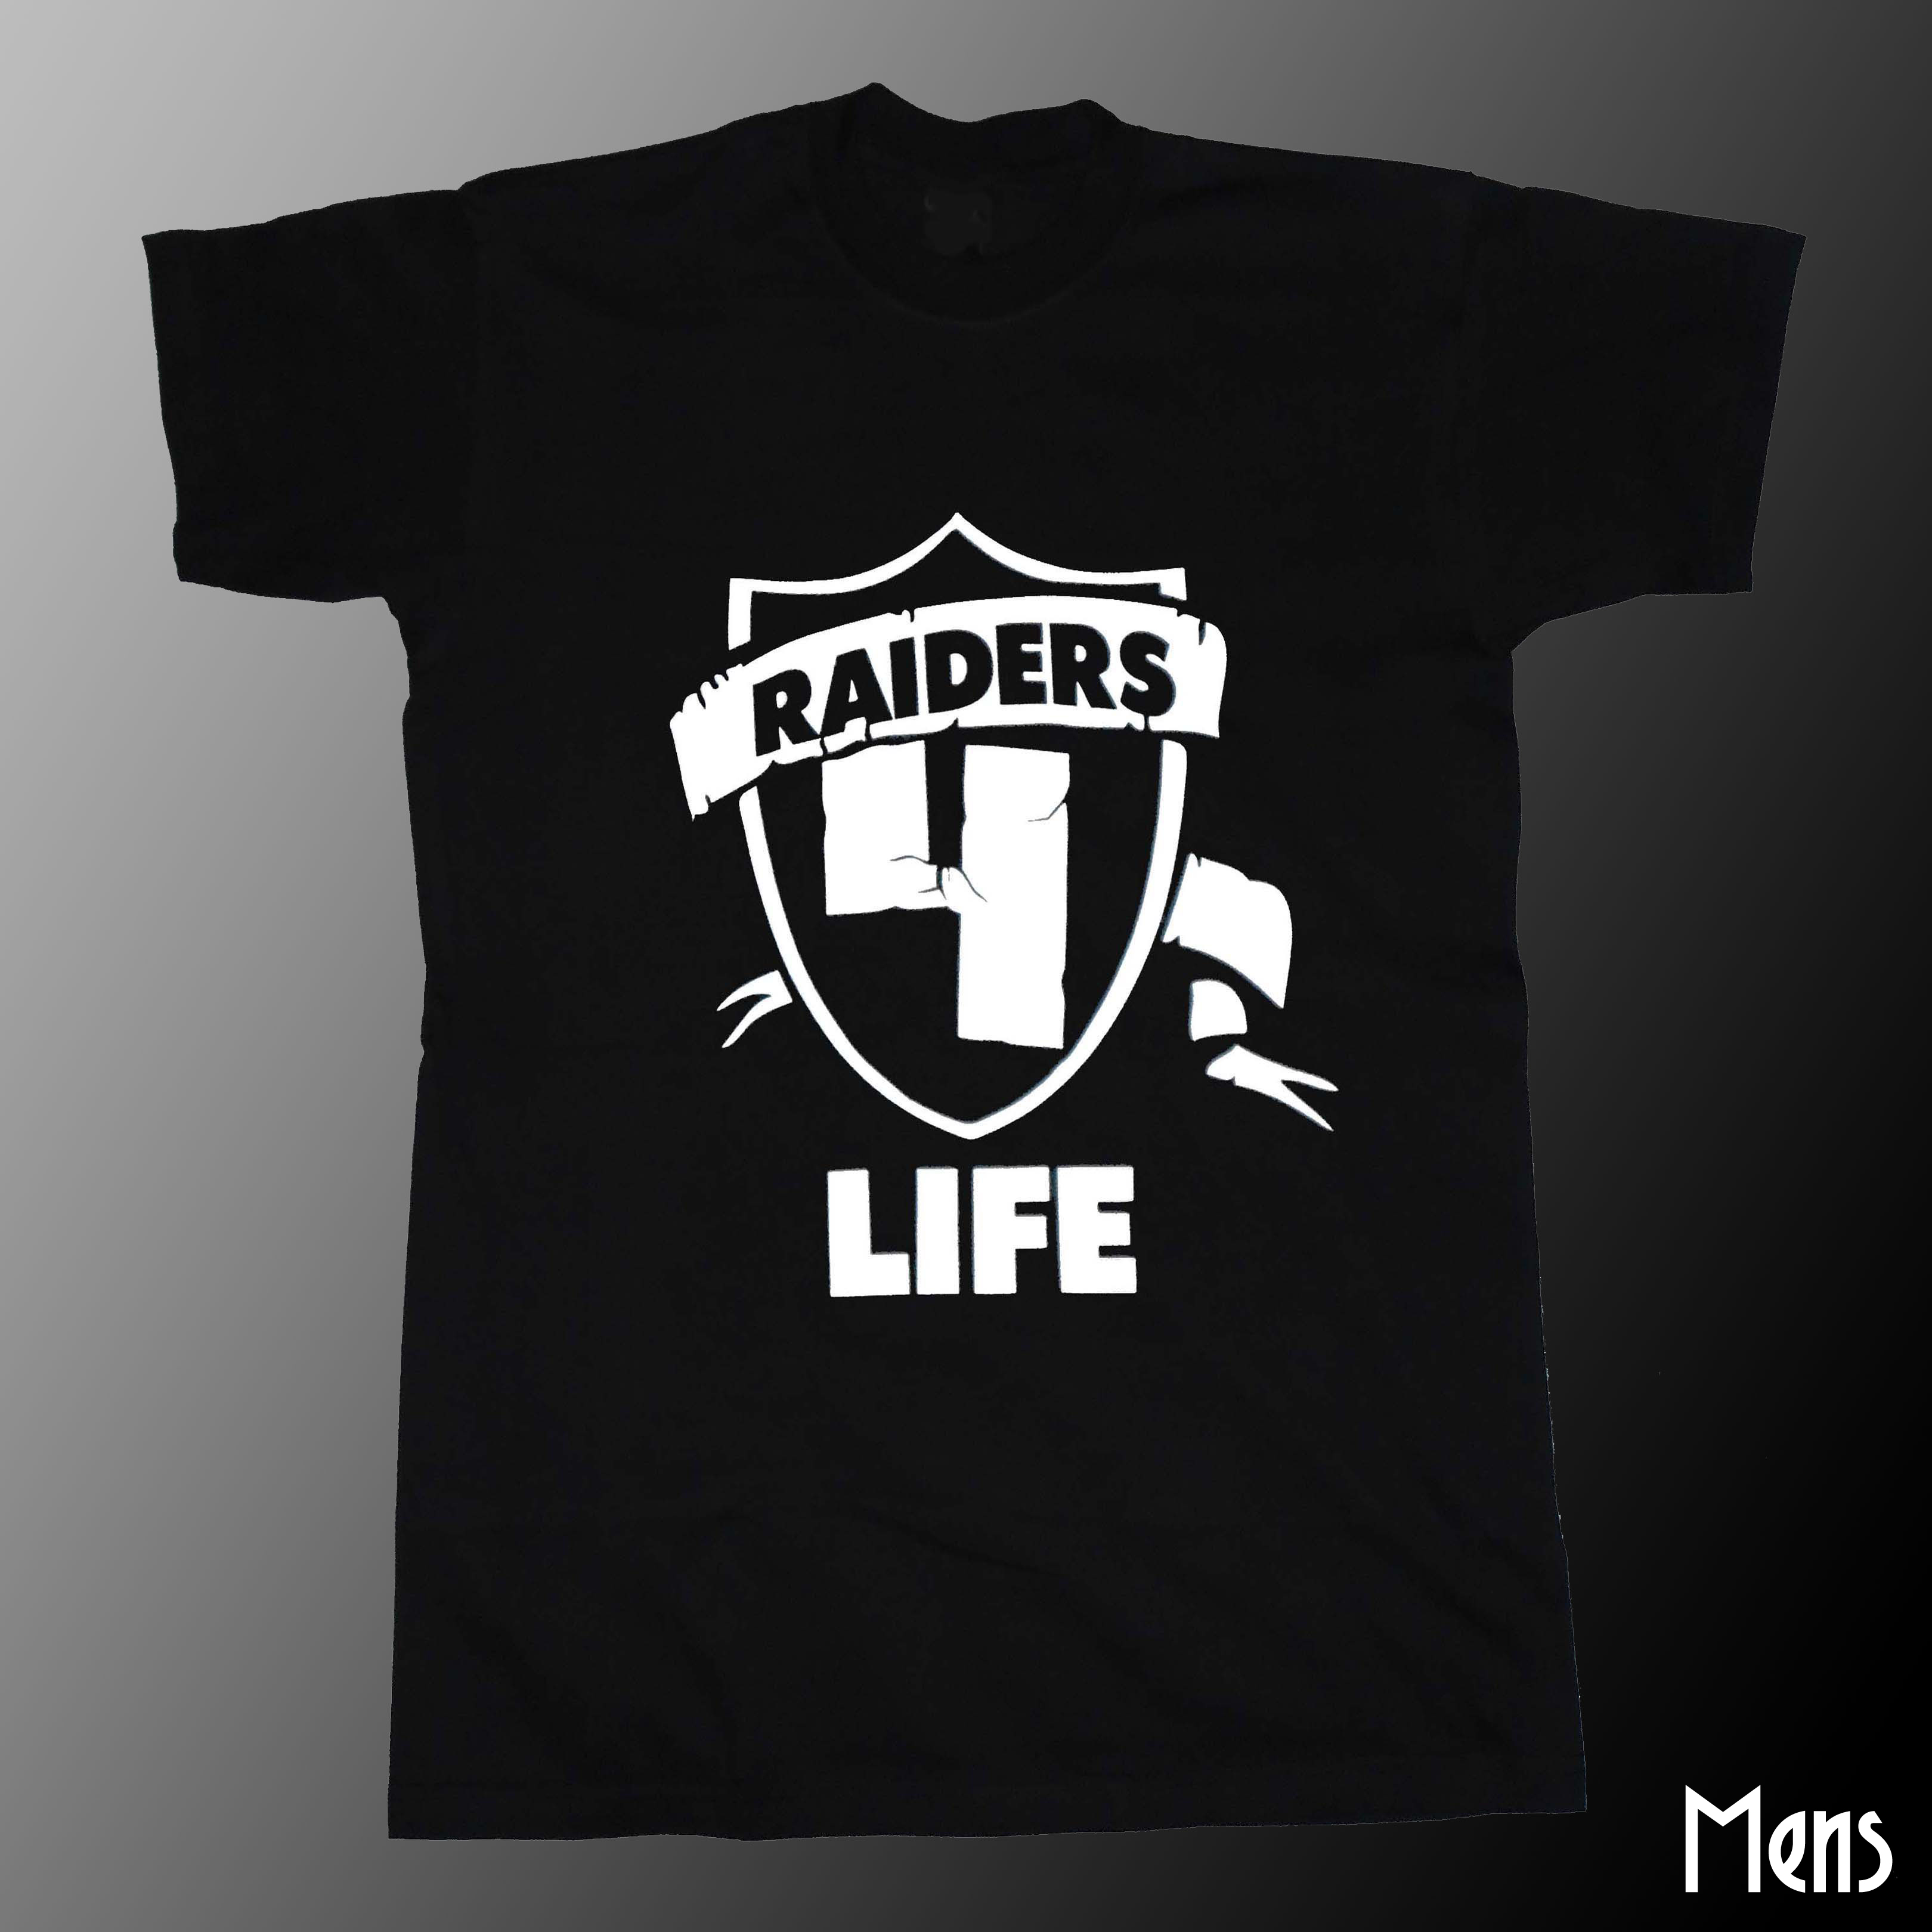 Raiders Black Hole T-Shirts (page 2) - Pics about space